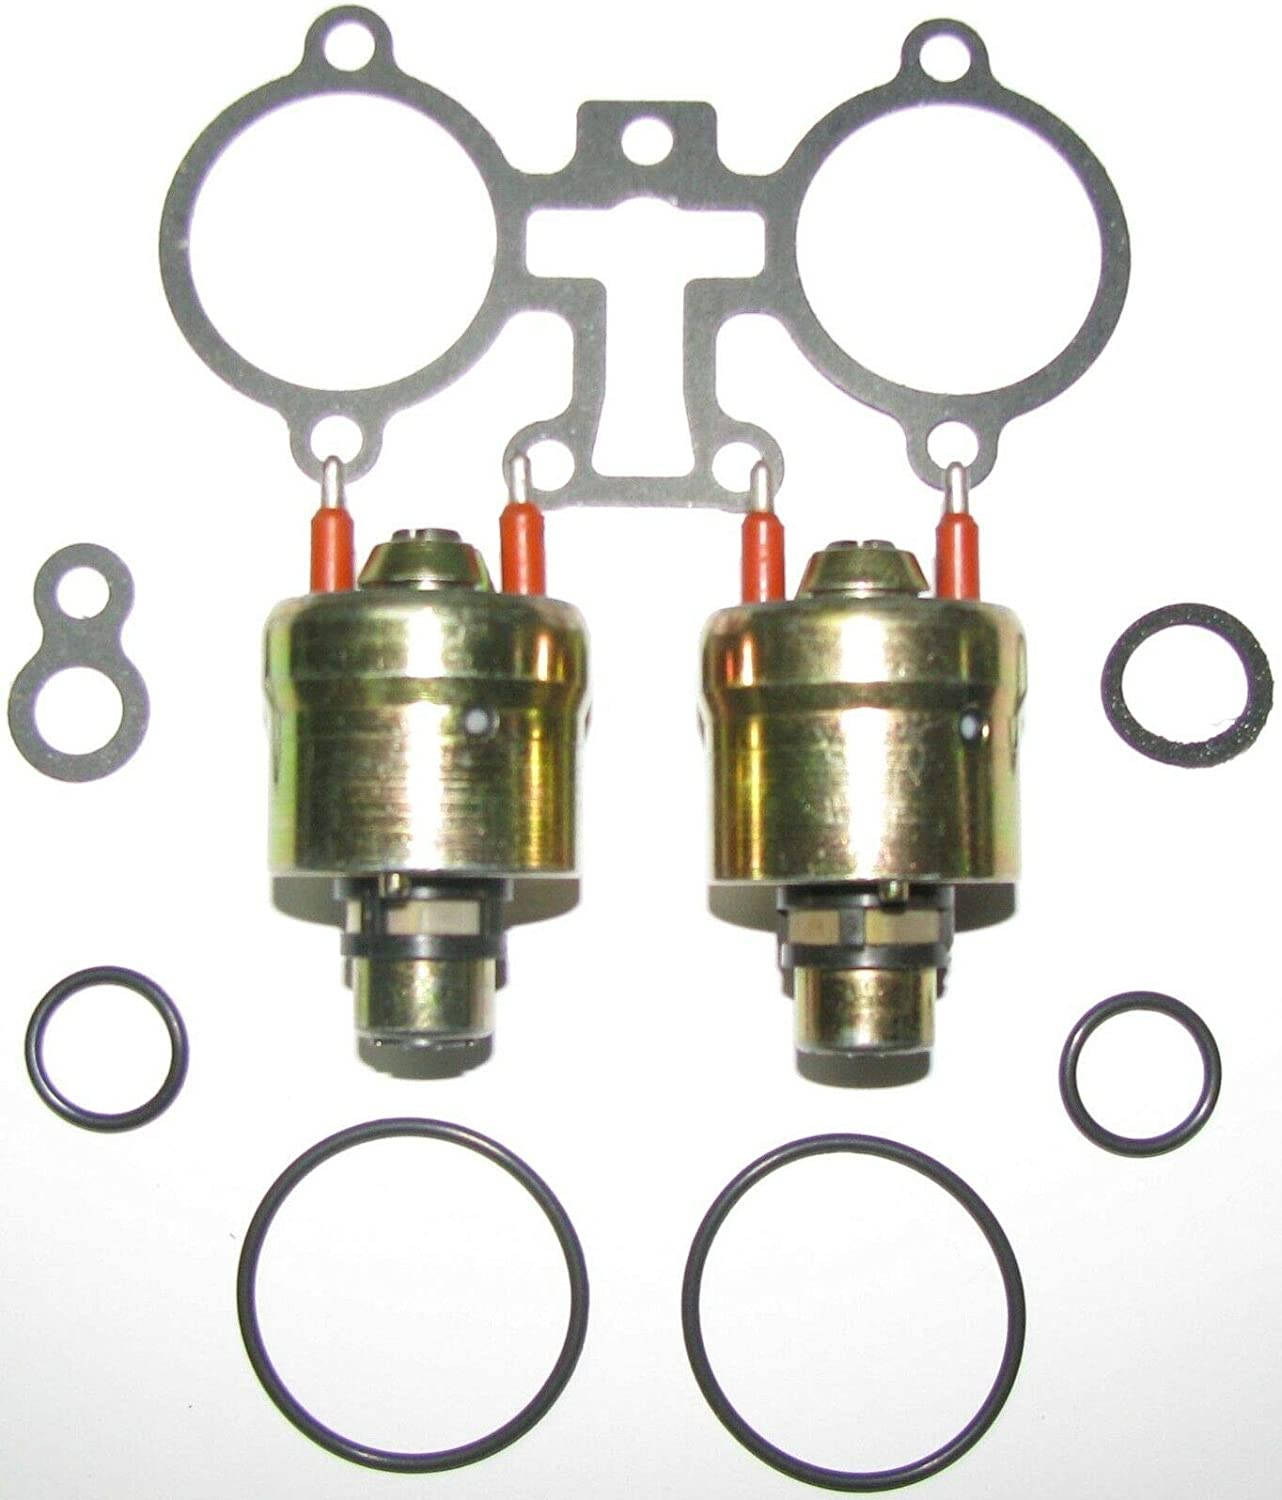 2 Pack THROTTLE BODY TBI FUEL INJECTOR SET FOR MerCruiser 305 350 5.0 5.7 852956A1 3855182